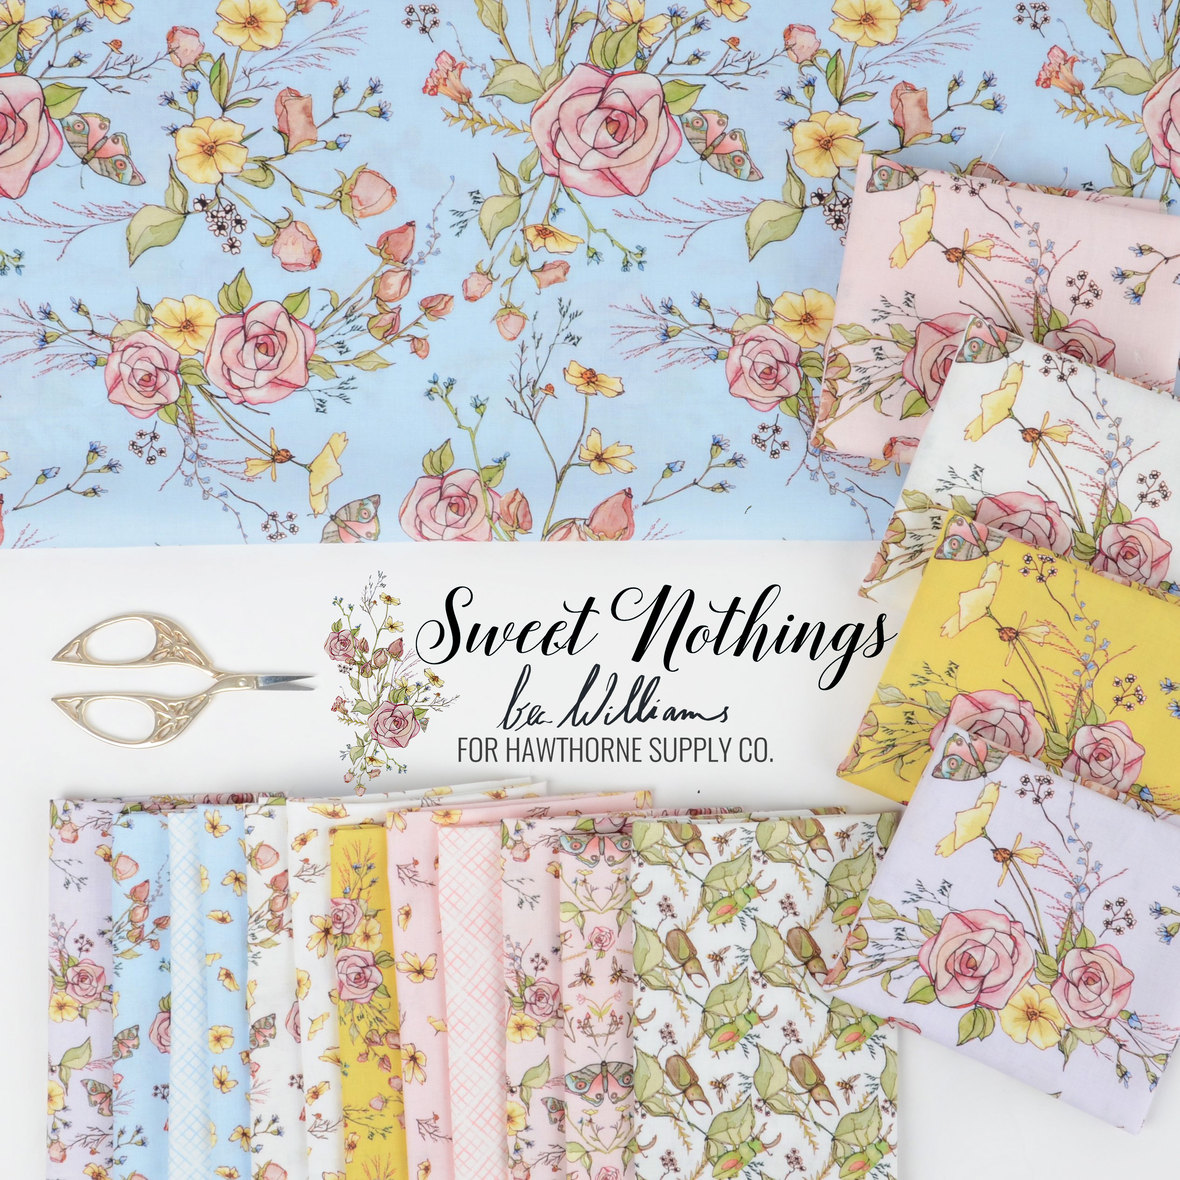 Sweet-Nothings-by-Bec-Williams-for-Hawthorne-Supply-Co-fabric